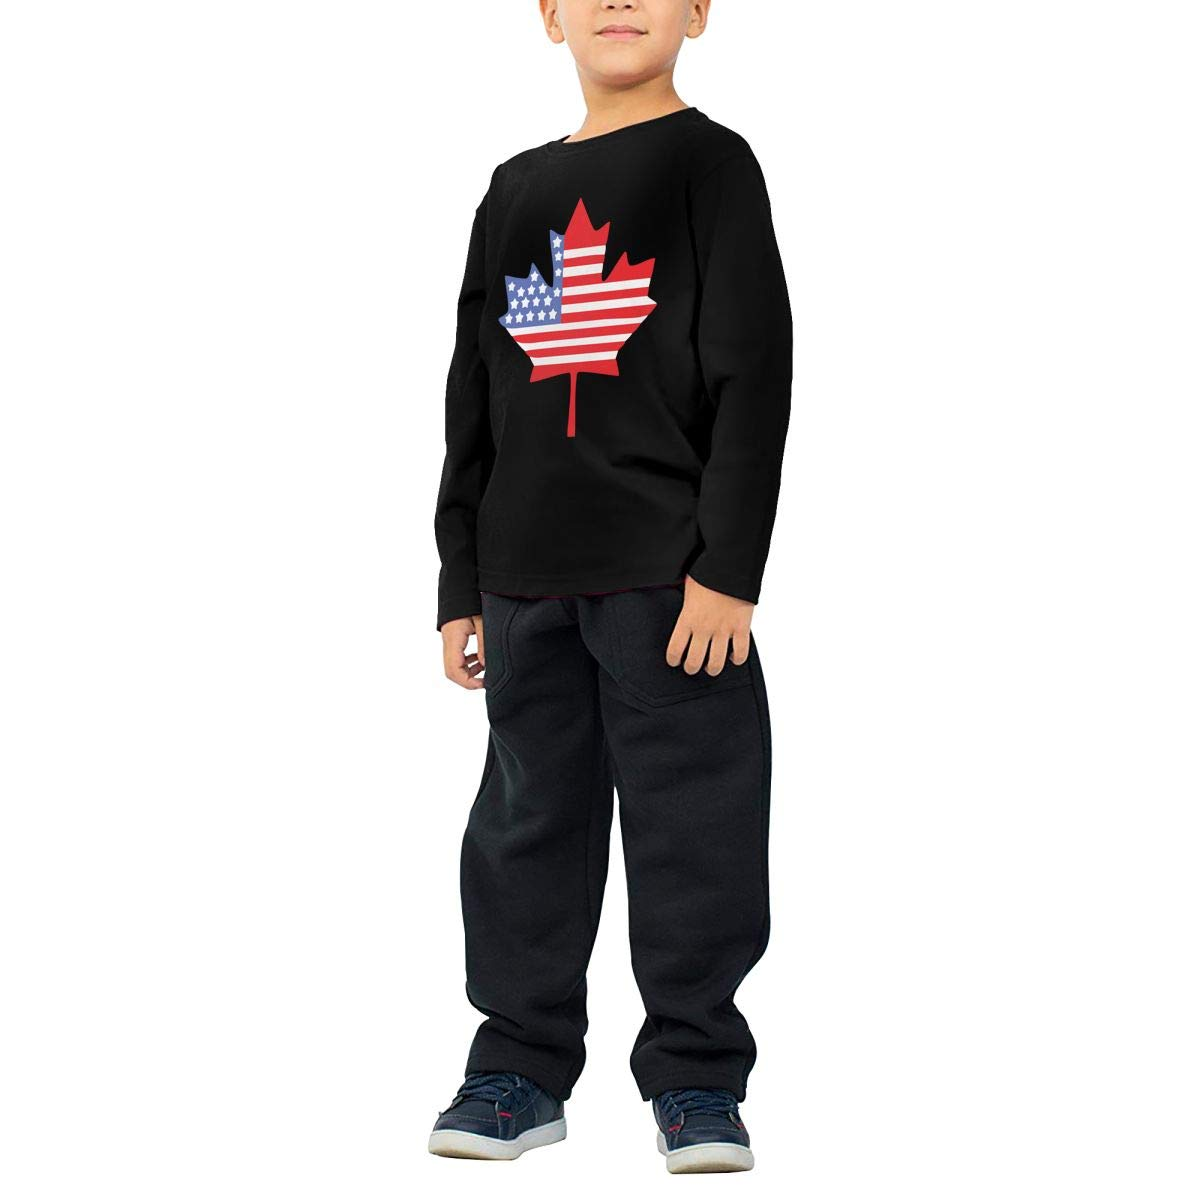 Baby Boys Kids Canadian American Flag Printed Long Sleeve 100/% Cotton Infants Tops